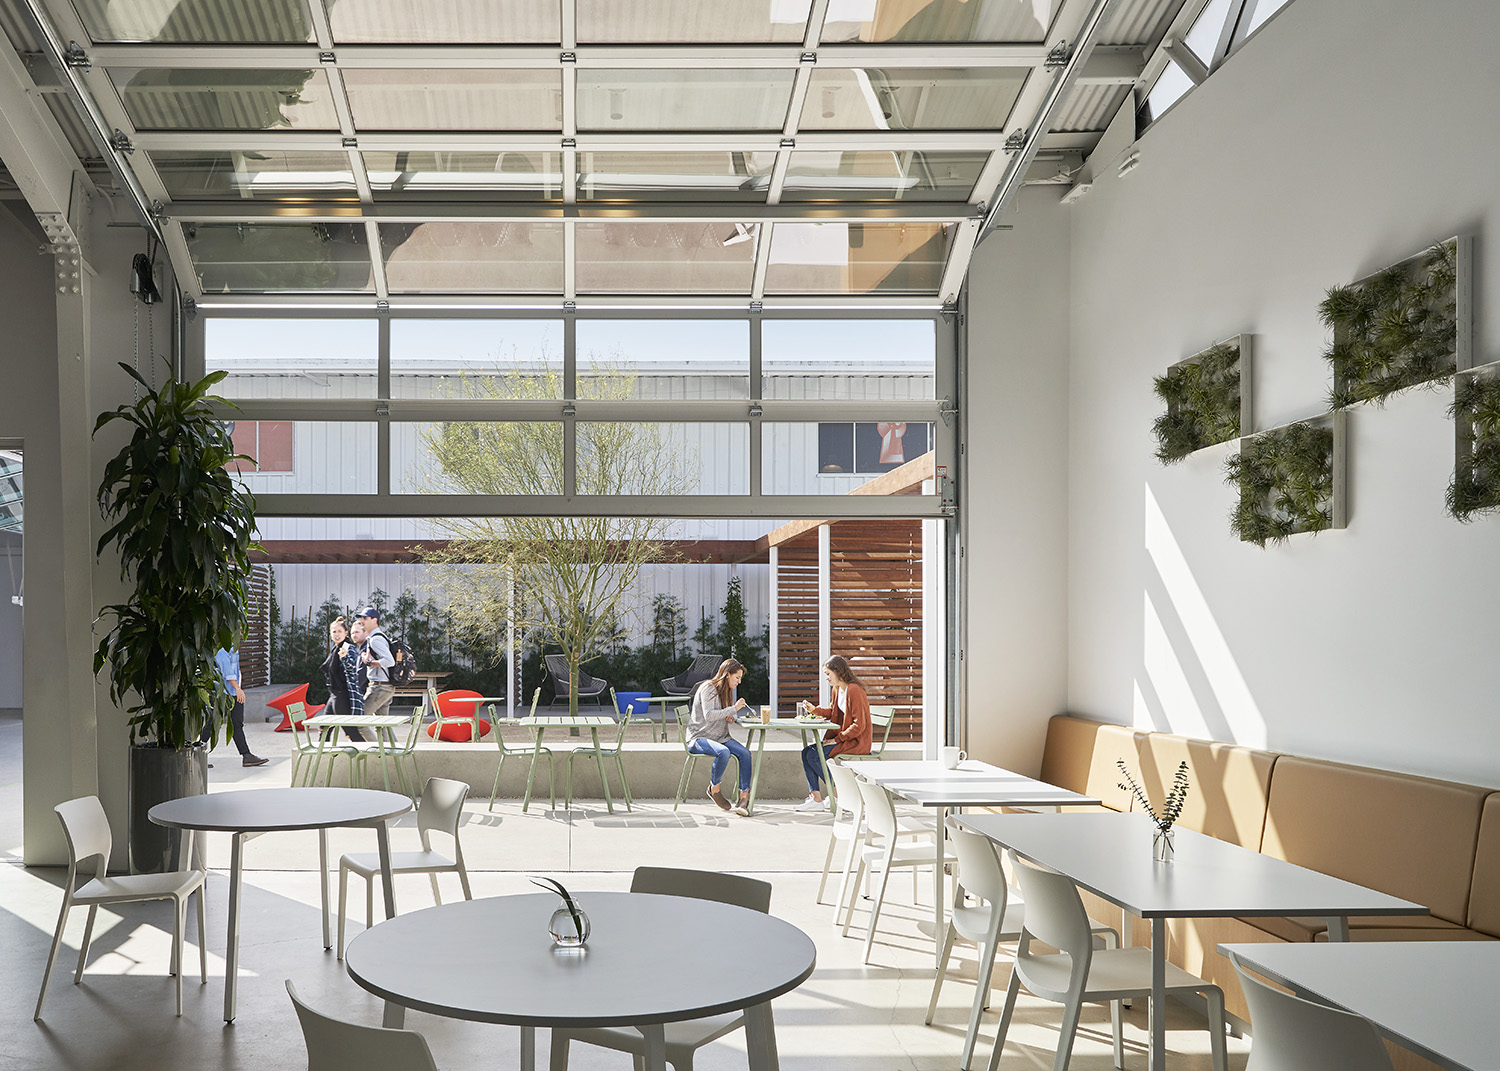 Another opening point to the courtyard for maximum natural light and movement. Kevin Scott